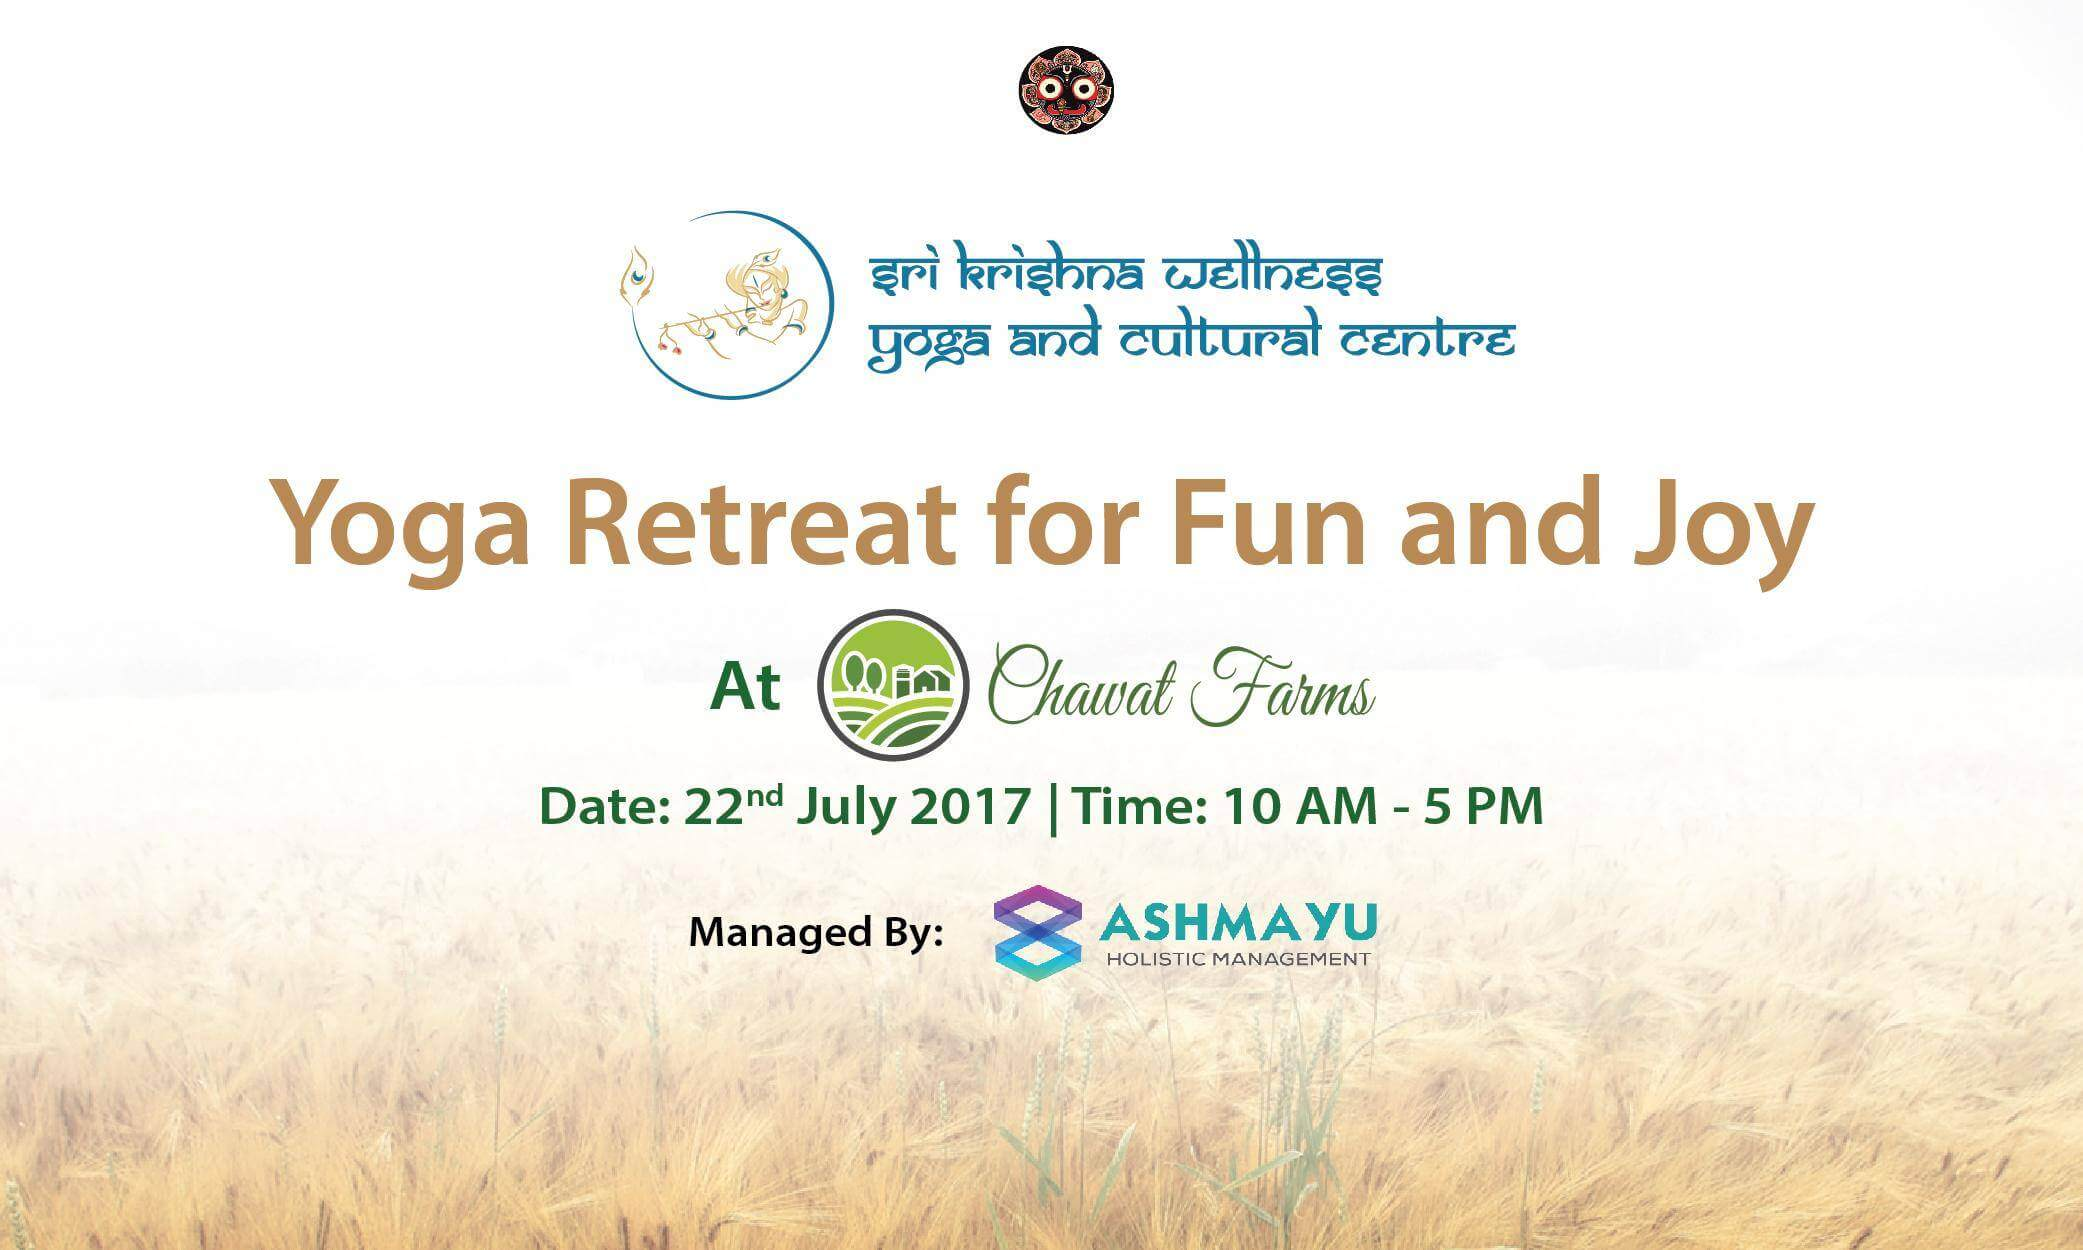 Yoga retreat for Fun and Joy